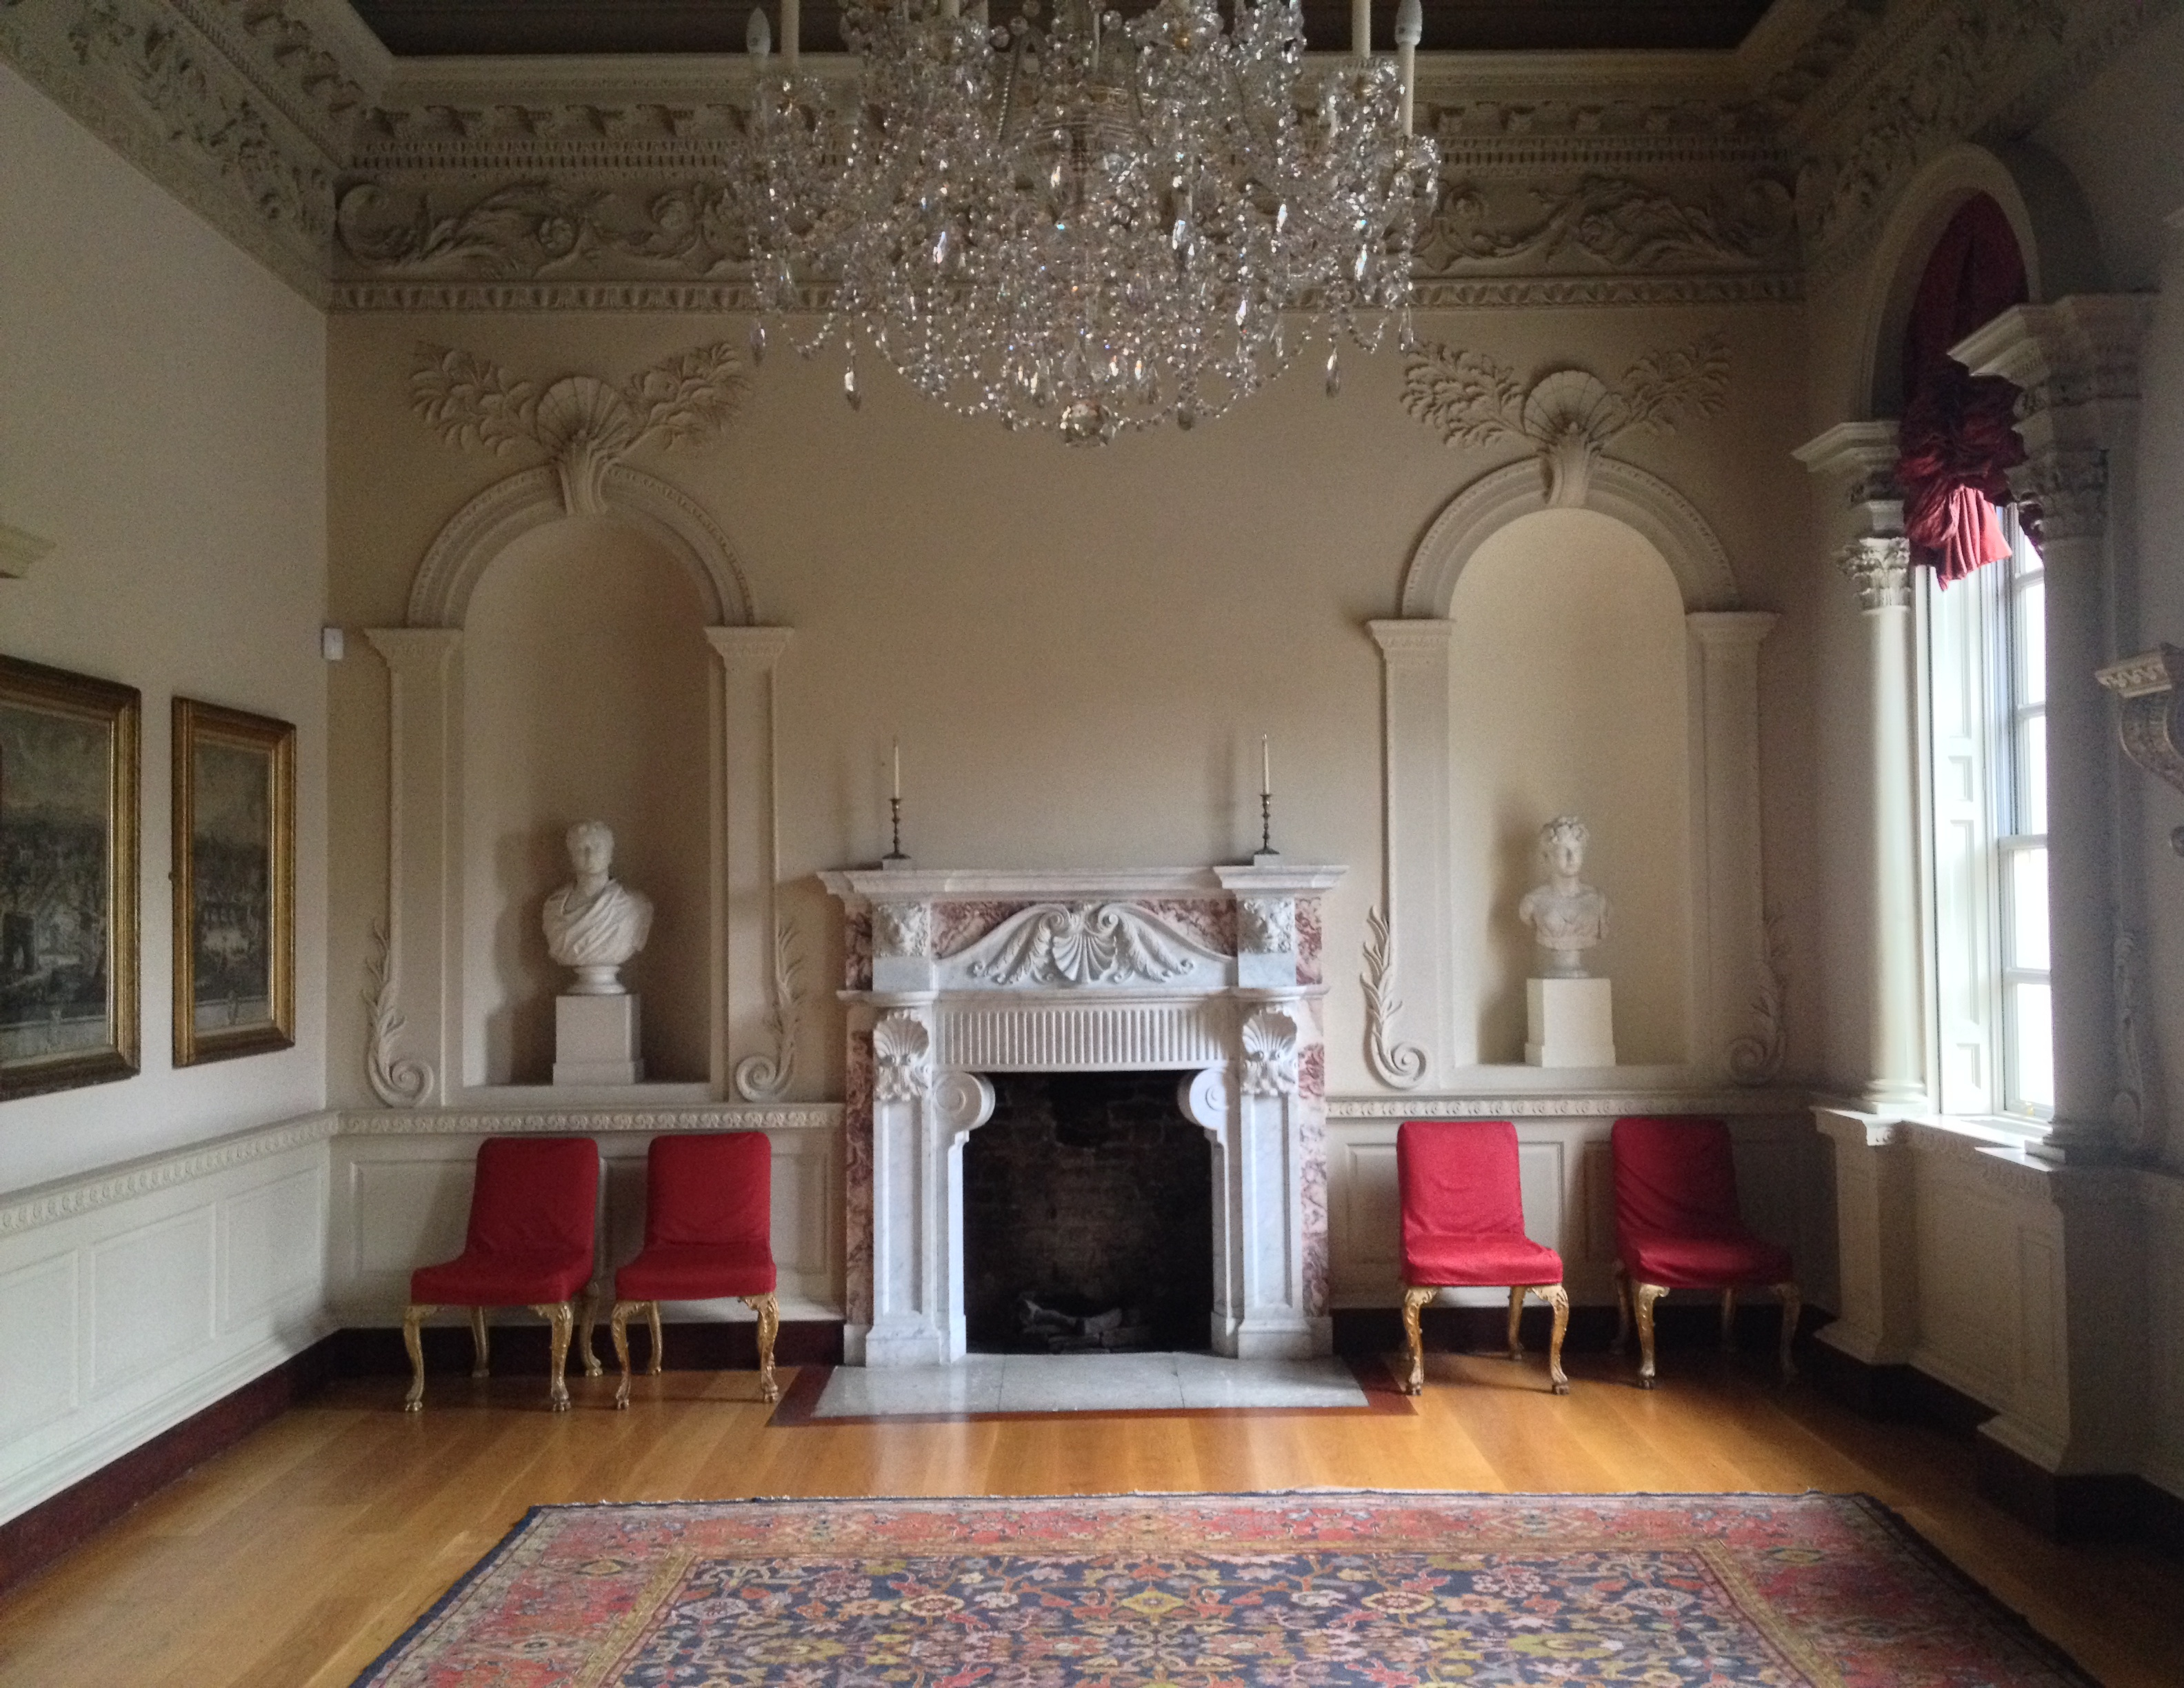 The most beautiful room in ireland the irish aesthete - Beautiful rooms images ...